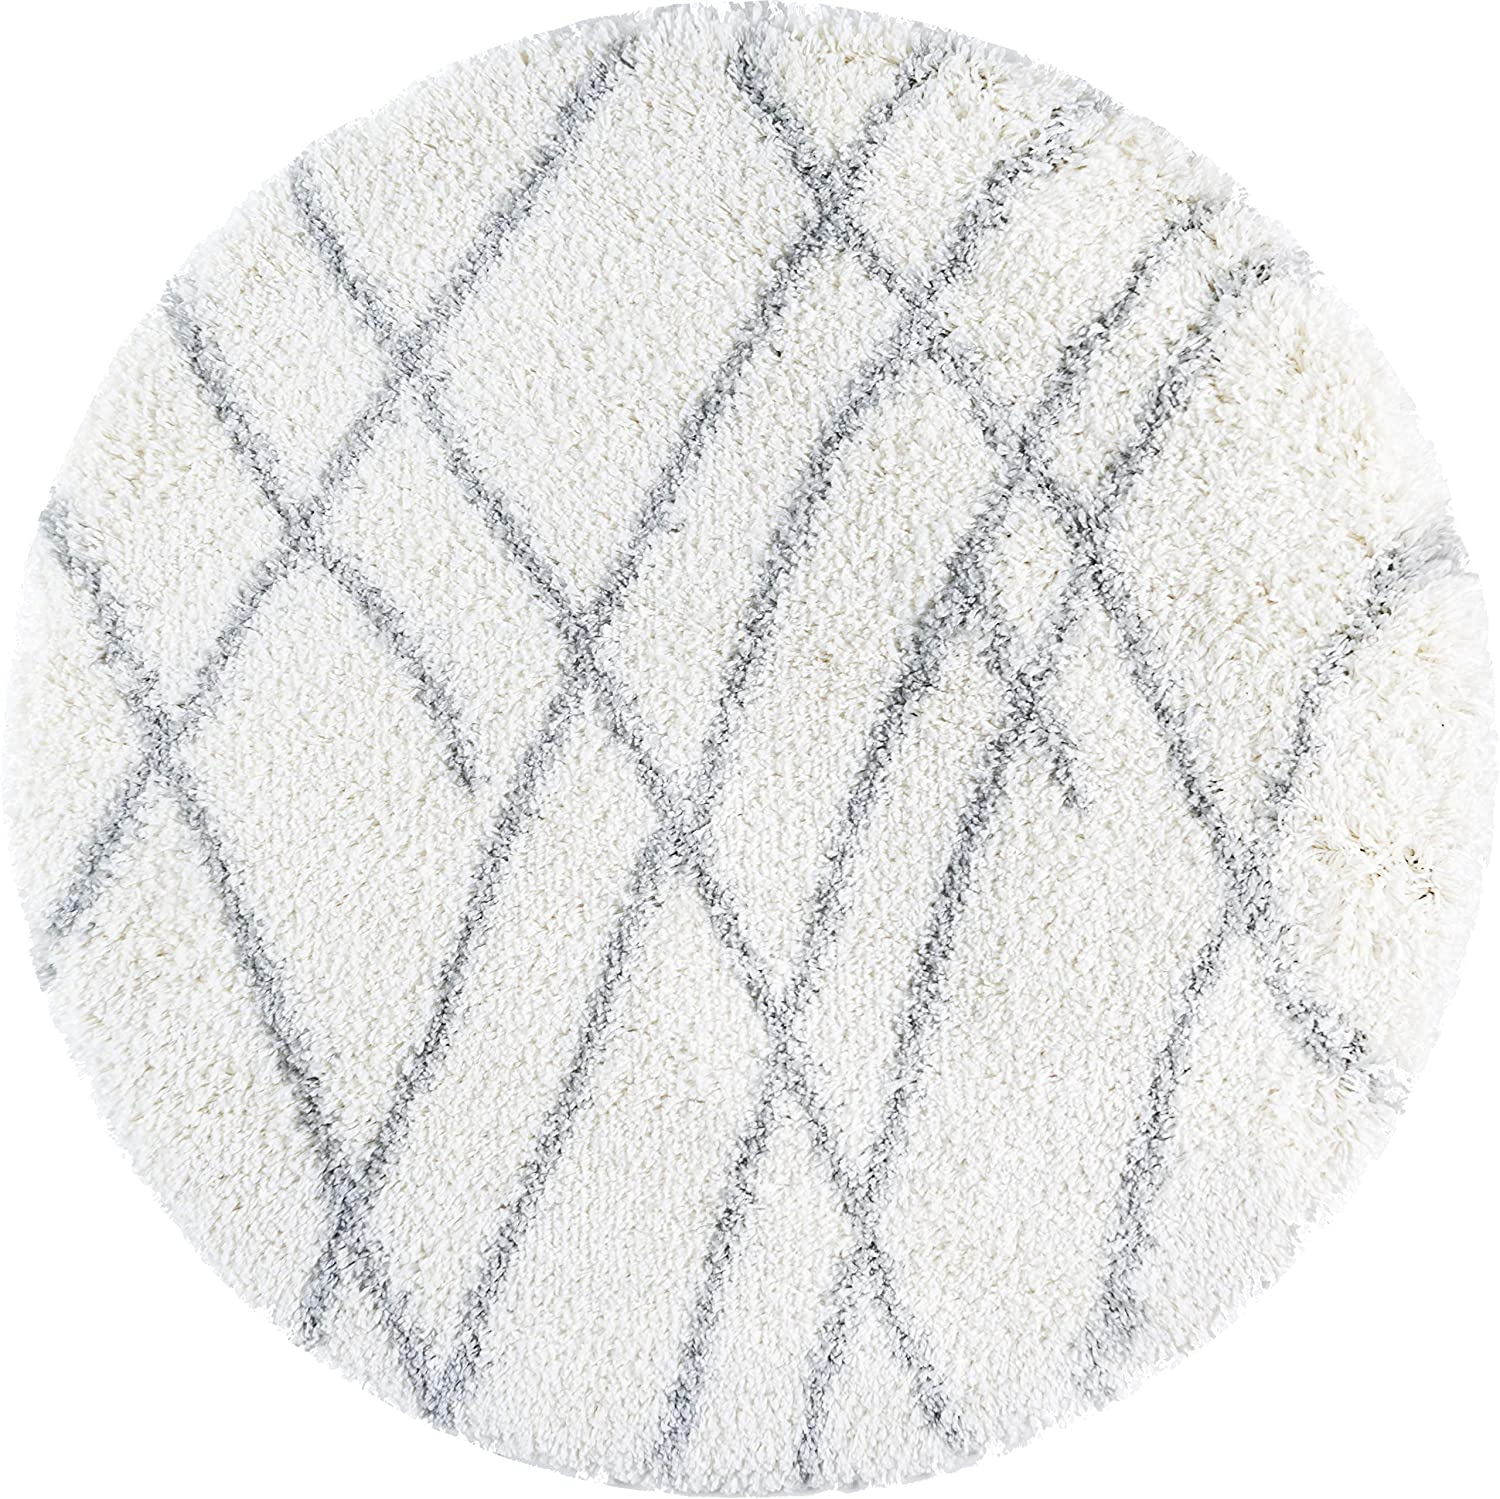 Rugs.com Soft Touch Shag Collection Round Rug – 3 Ft Round Ivory Shag Rug Perfect for Kitchens, Dining Rooms